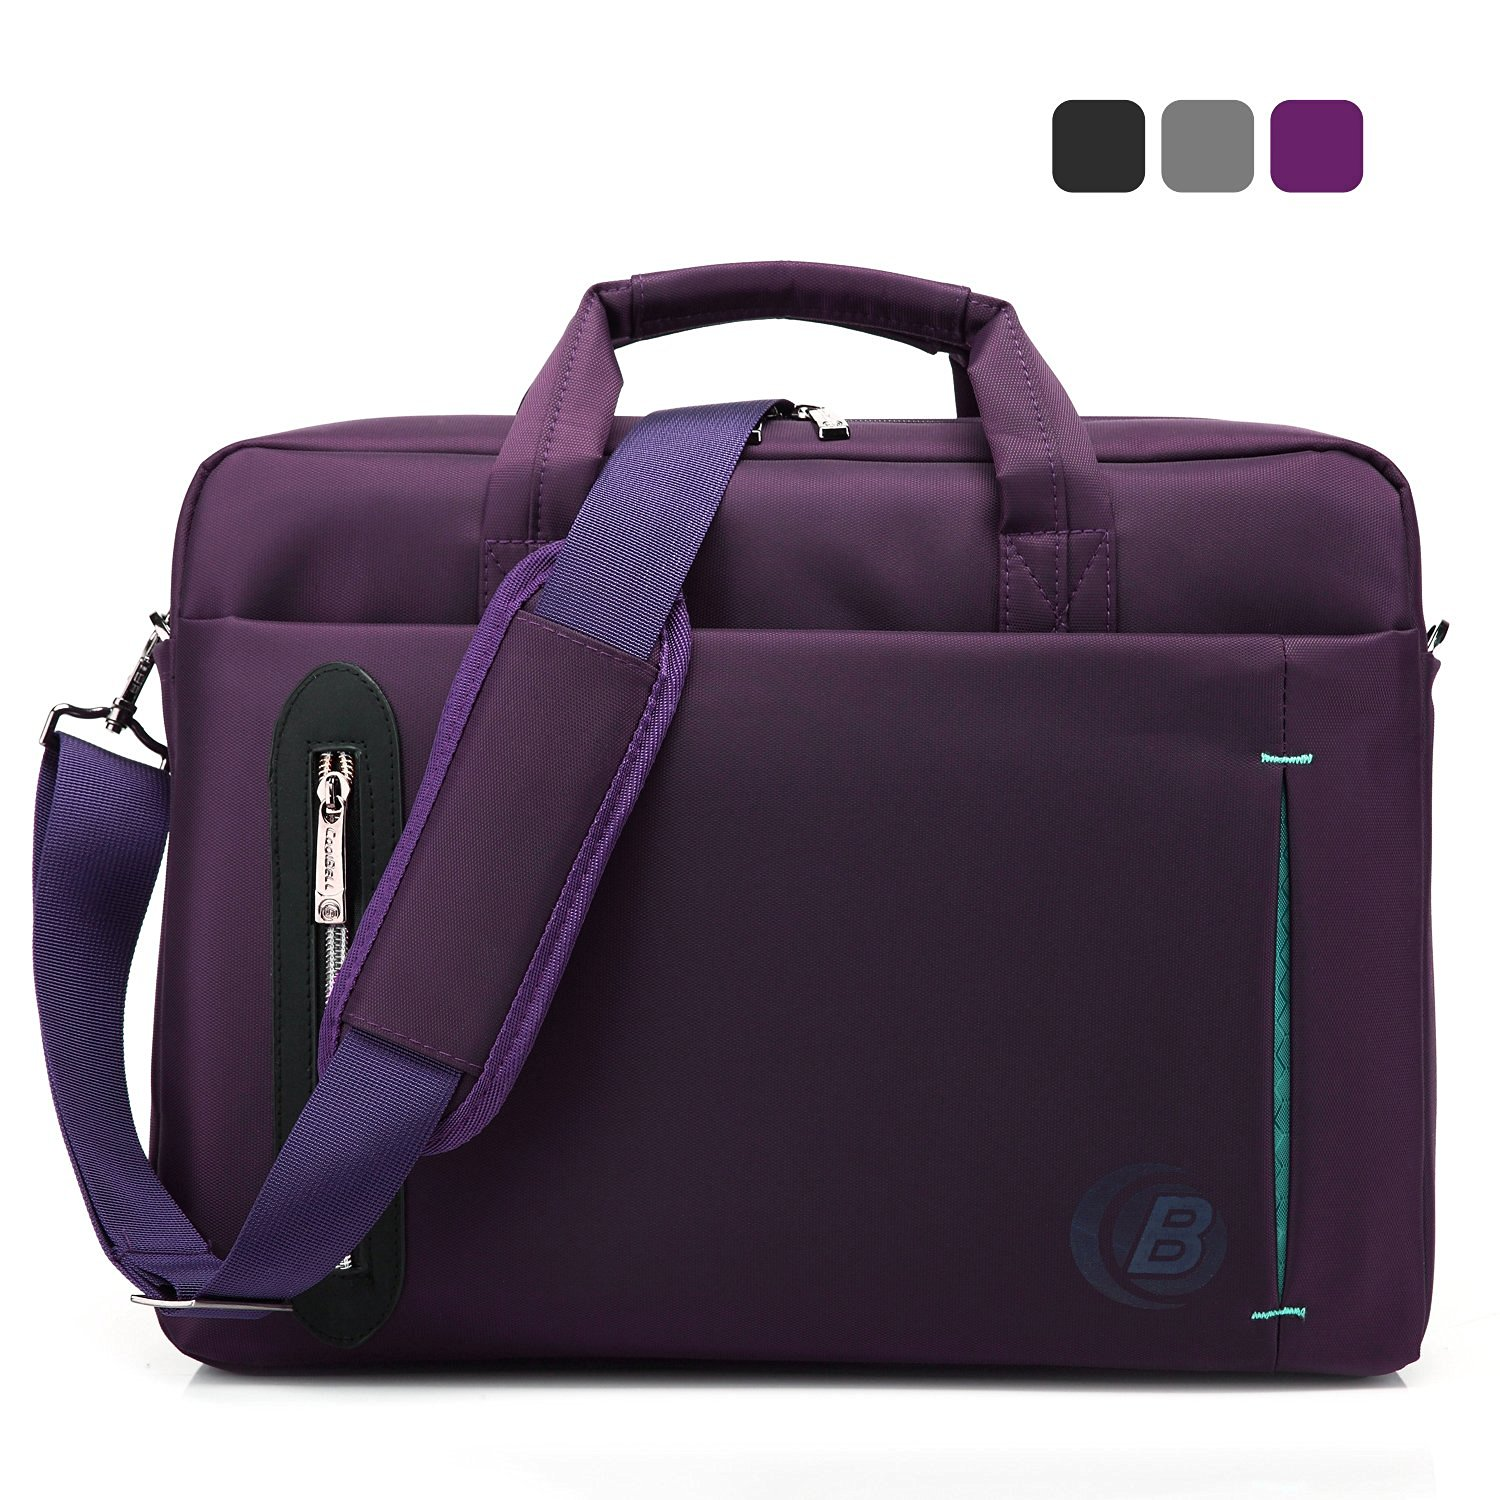 CoolBELL 15.6 inch Laptop Bag With Strap Messenger Shoulder Handle bag Briefcase Nylon Cloth Waterproof Multi-compartment For iPad Pro/Macbook/Asus/Lenovo for Men/ Women/Business(Purple)